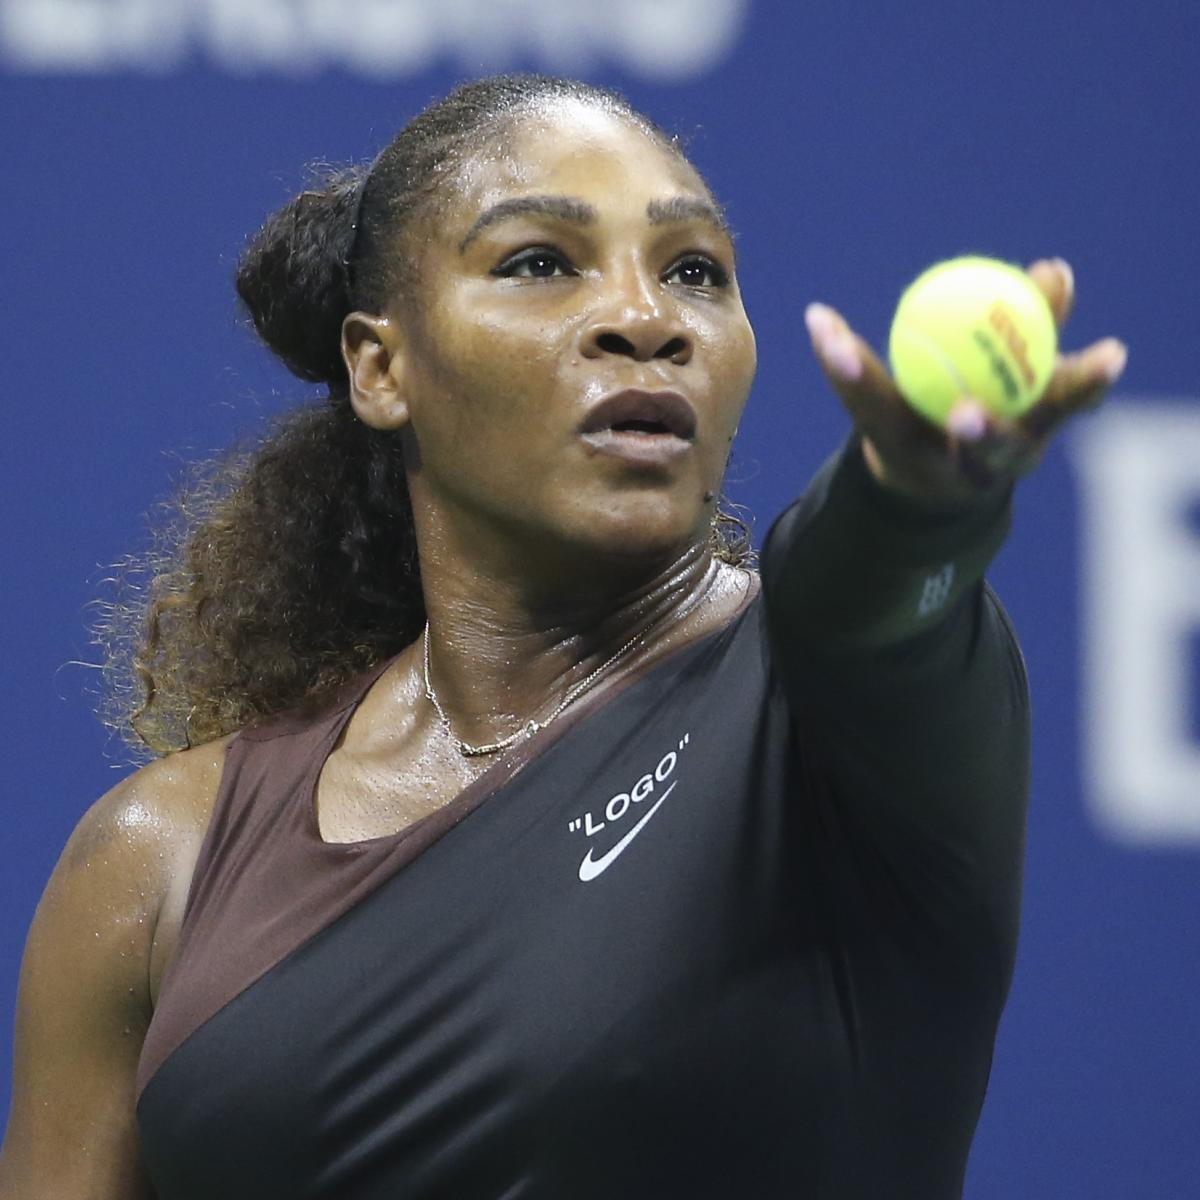 us open tennis 2018: tv schedule, start times for wednesday night